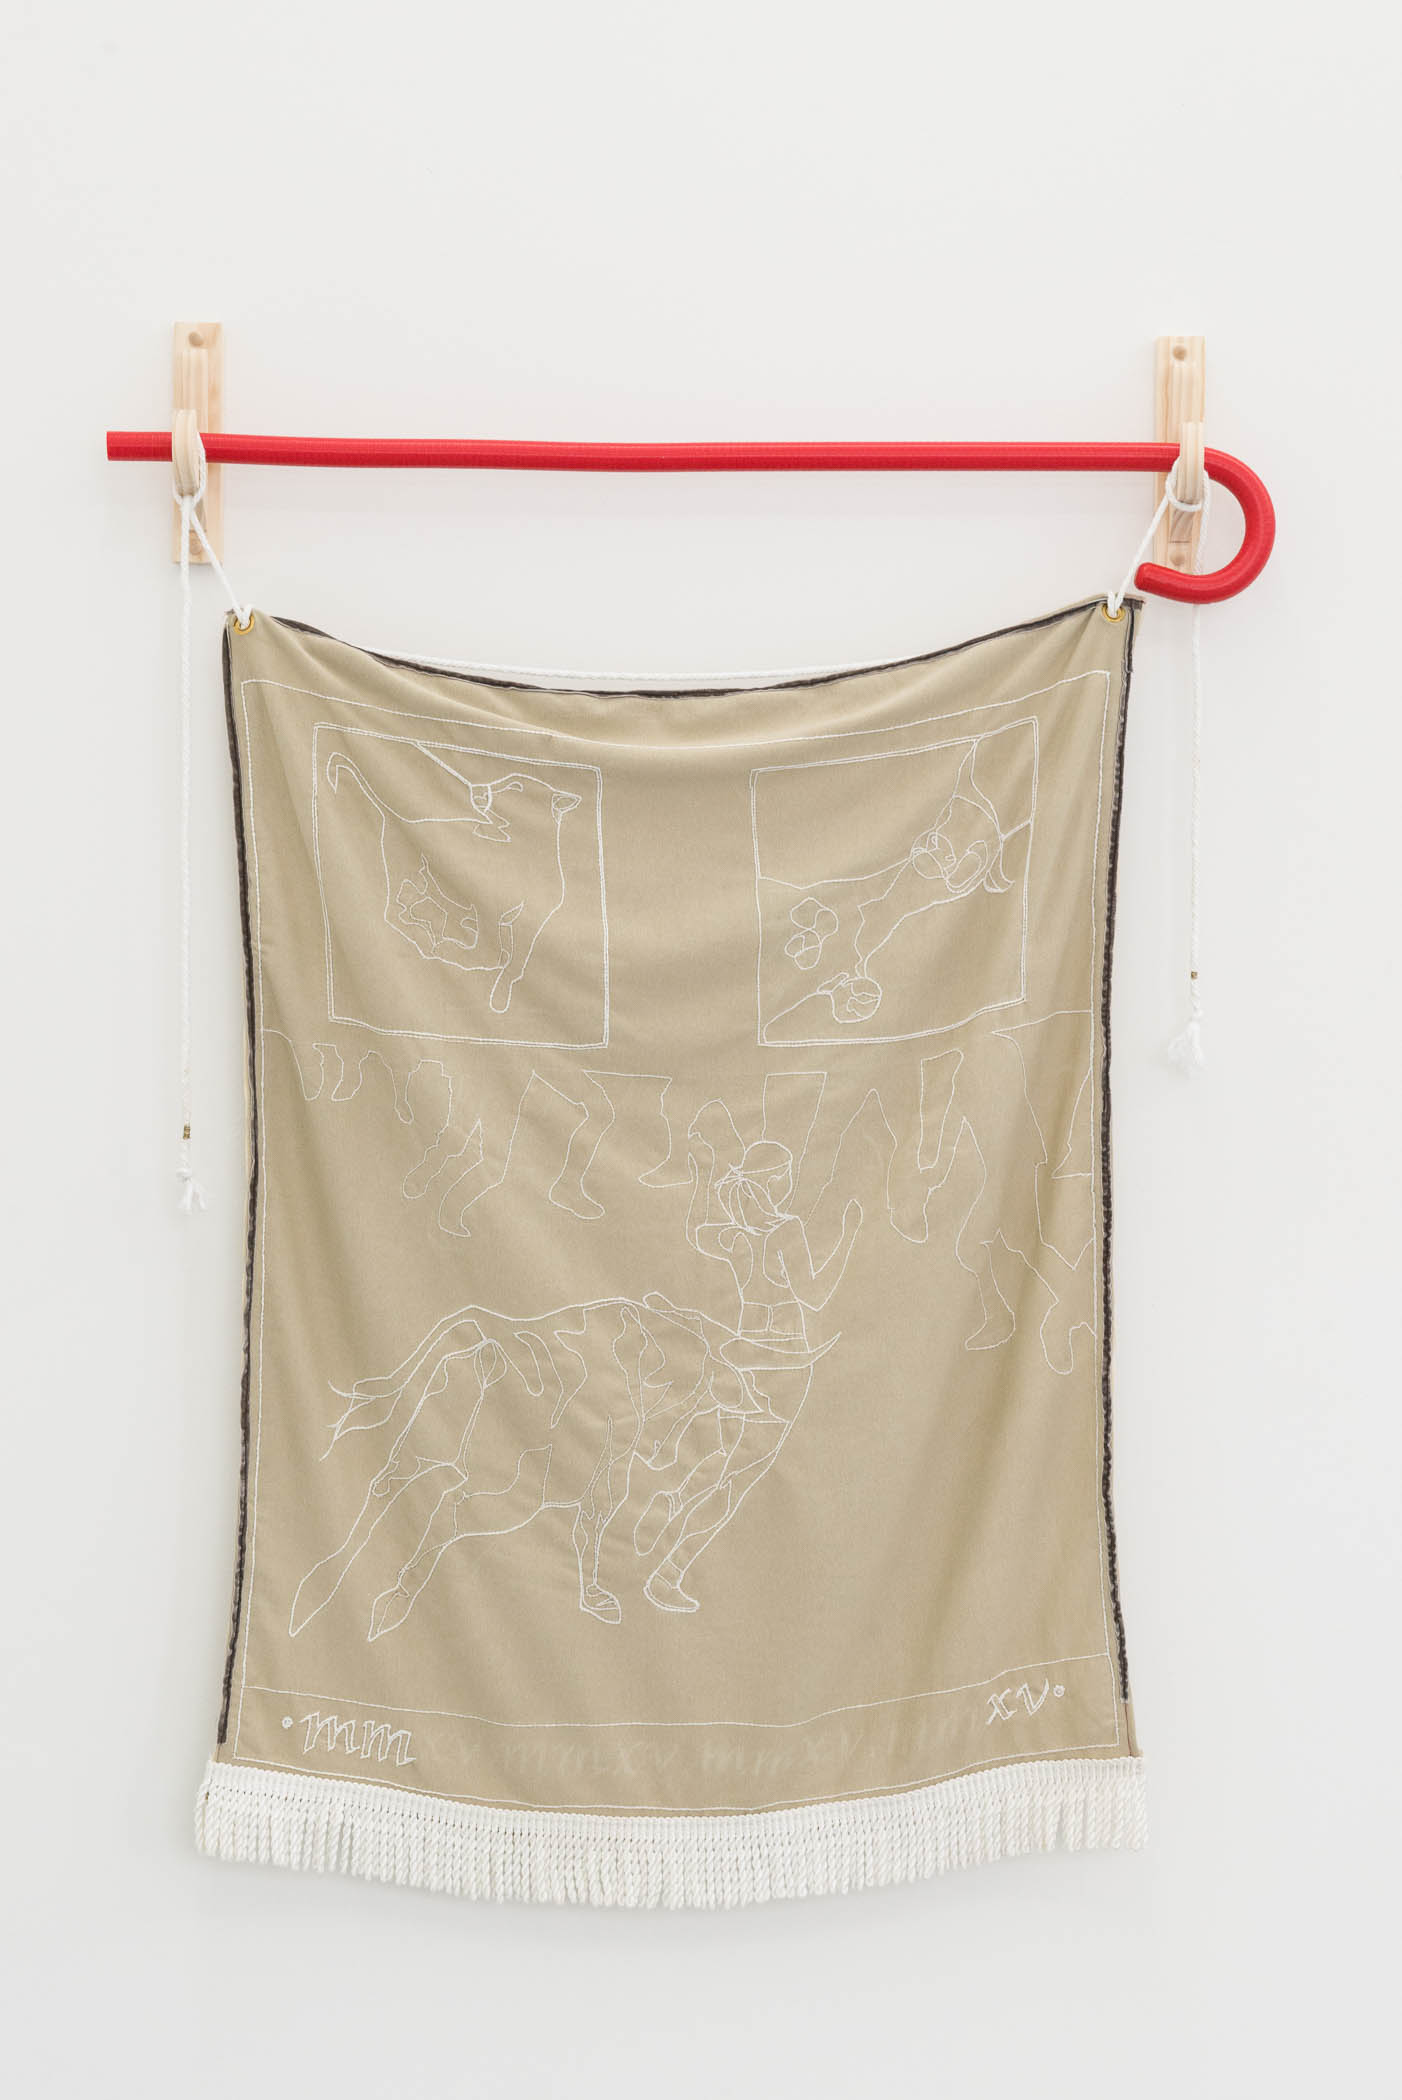 Rebecca Peel To know the speed of danger?, 2015 Polyester, cotton, wood, brass, ultra-high molecular weight polymer